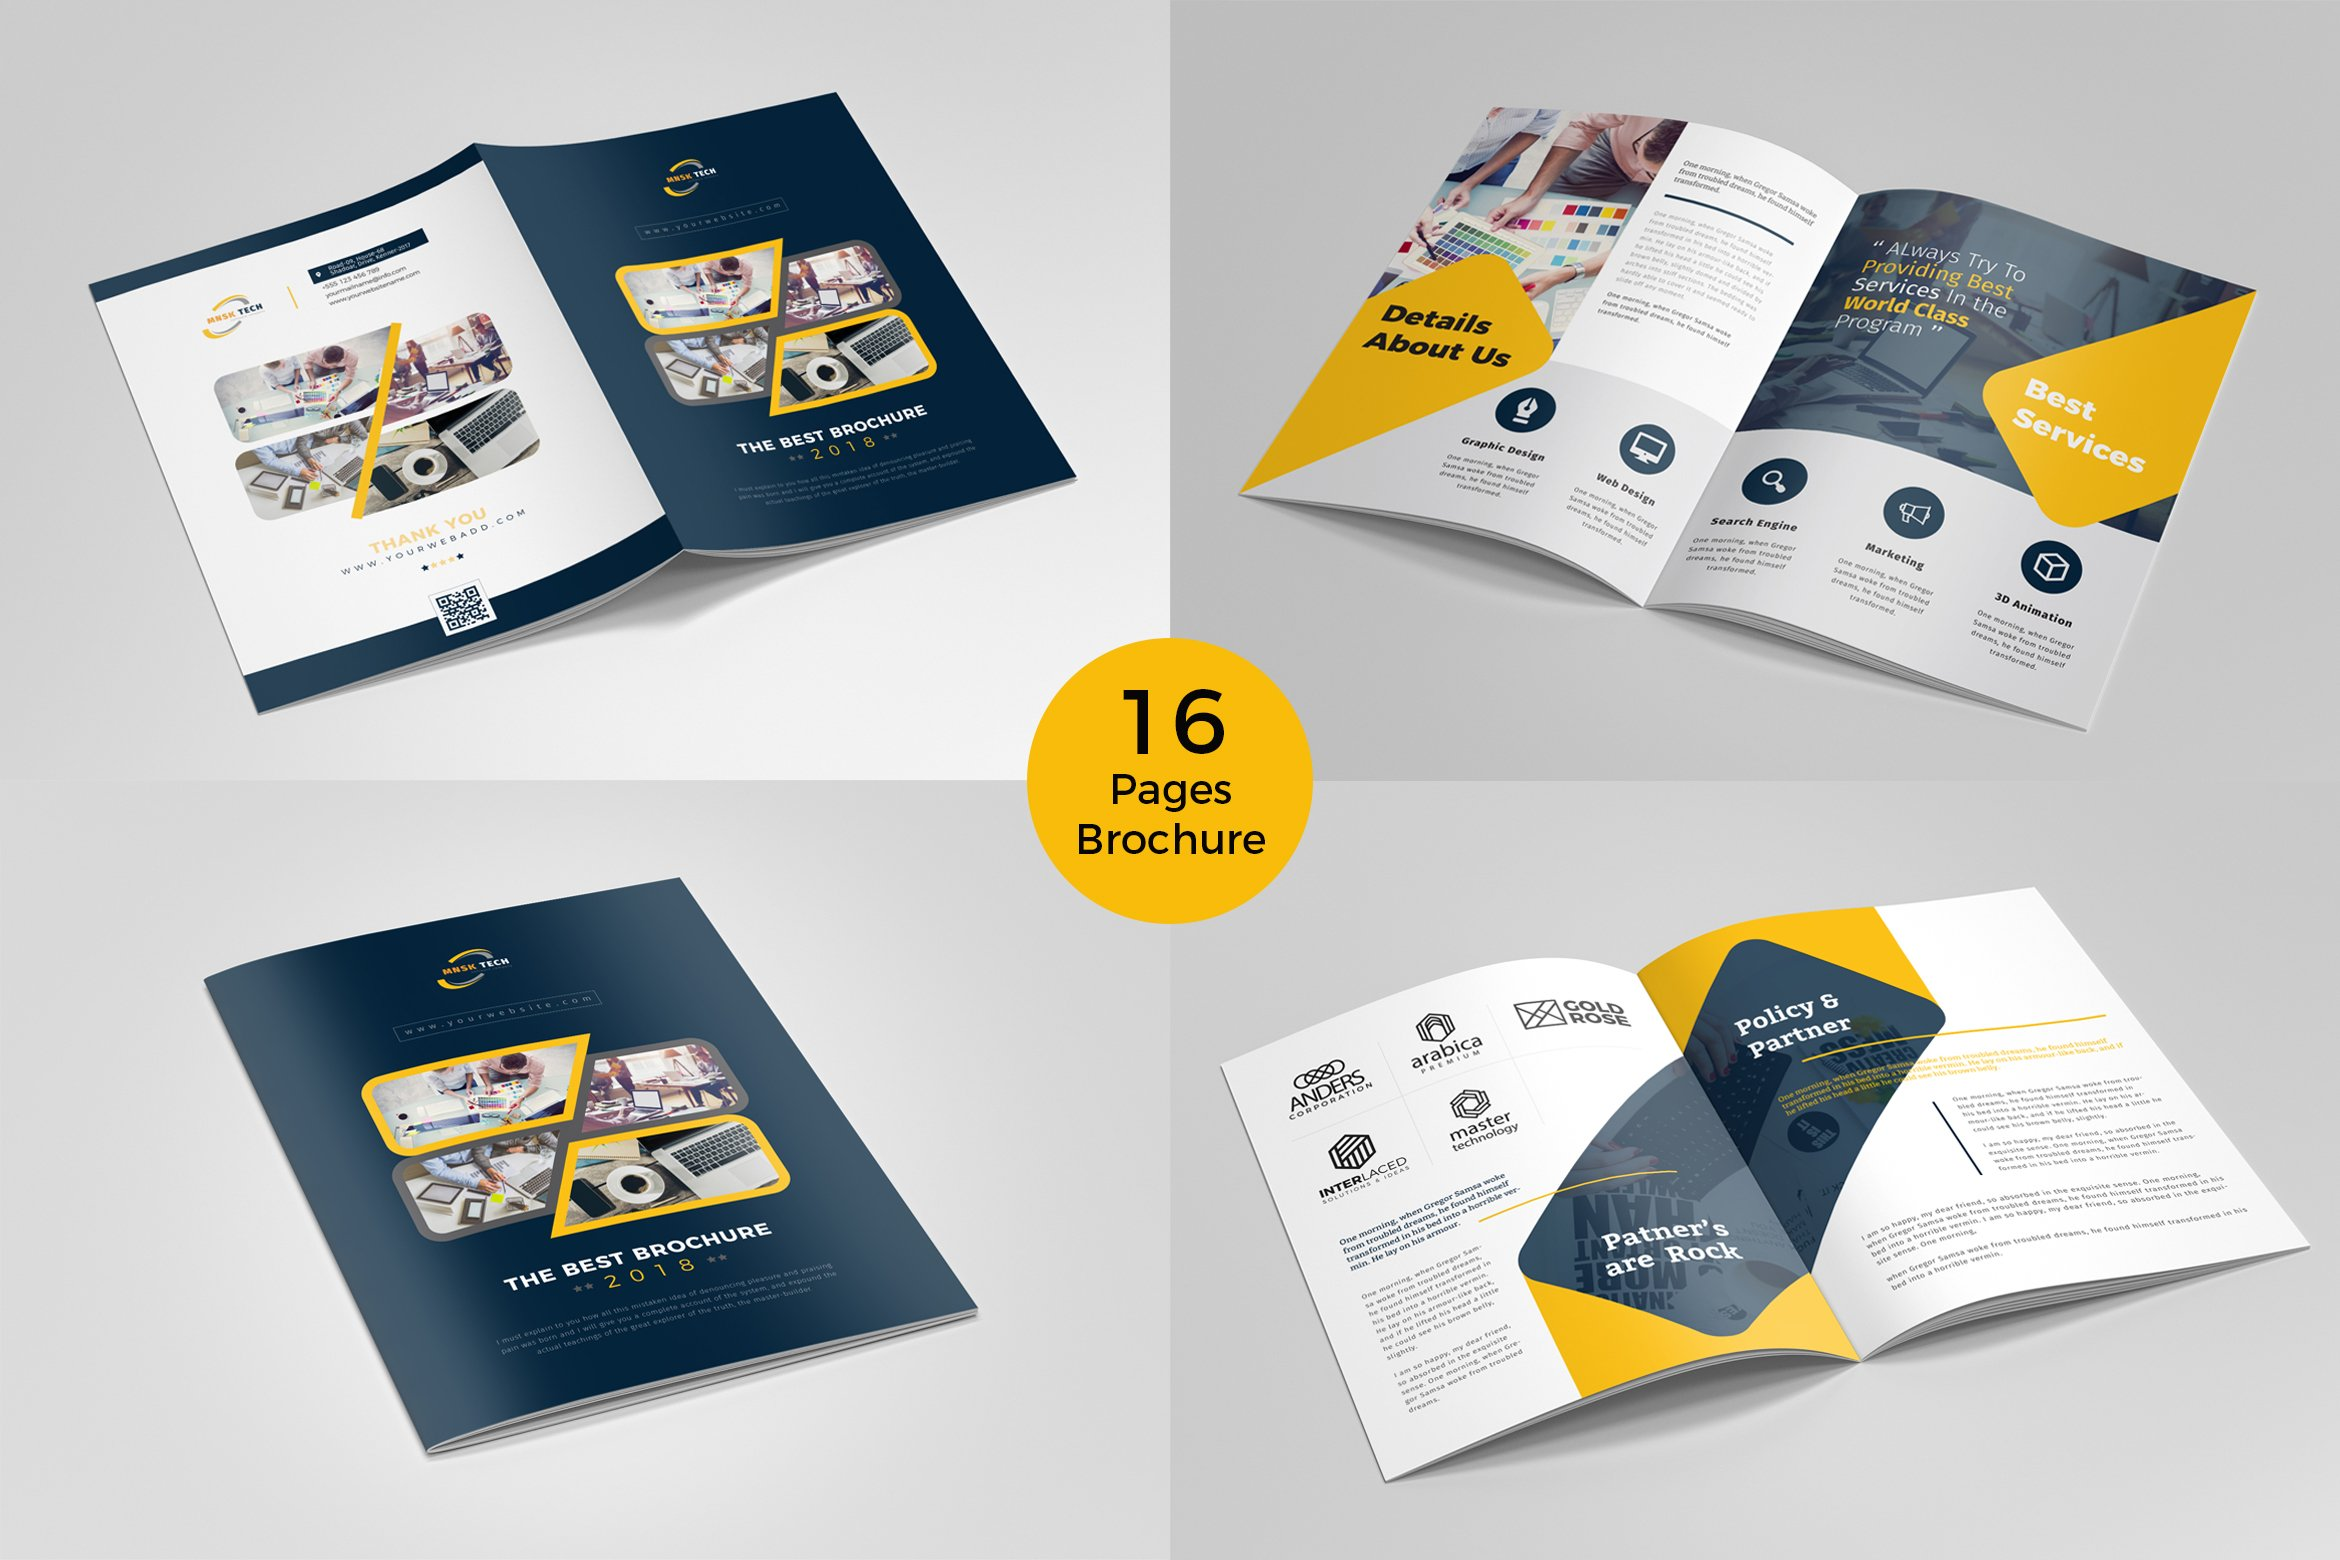 pages template brochure - brochure template 16 pages brochure templates